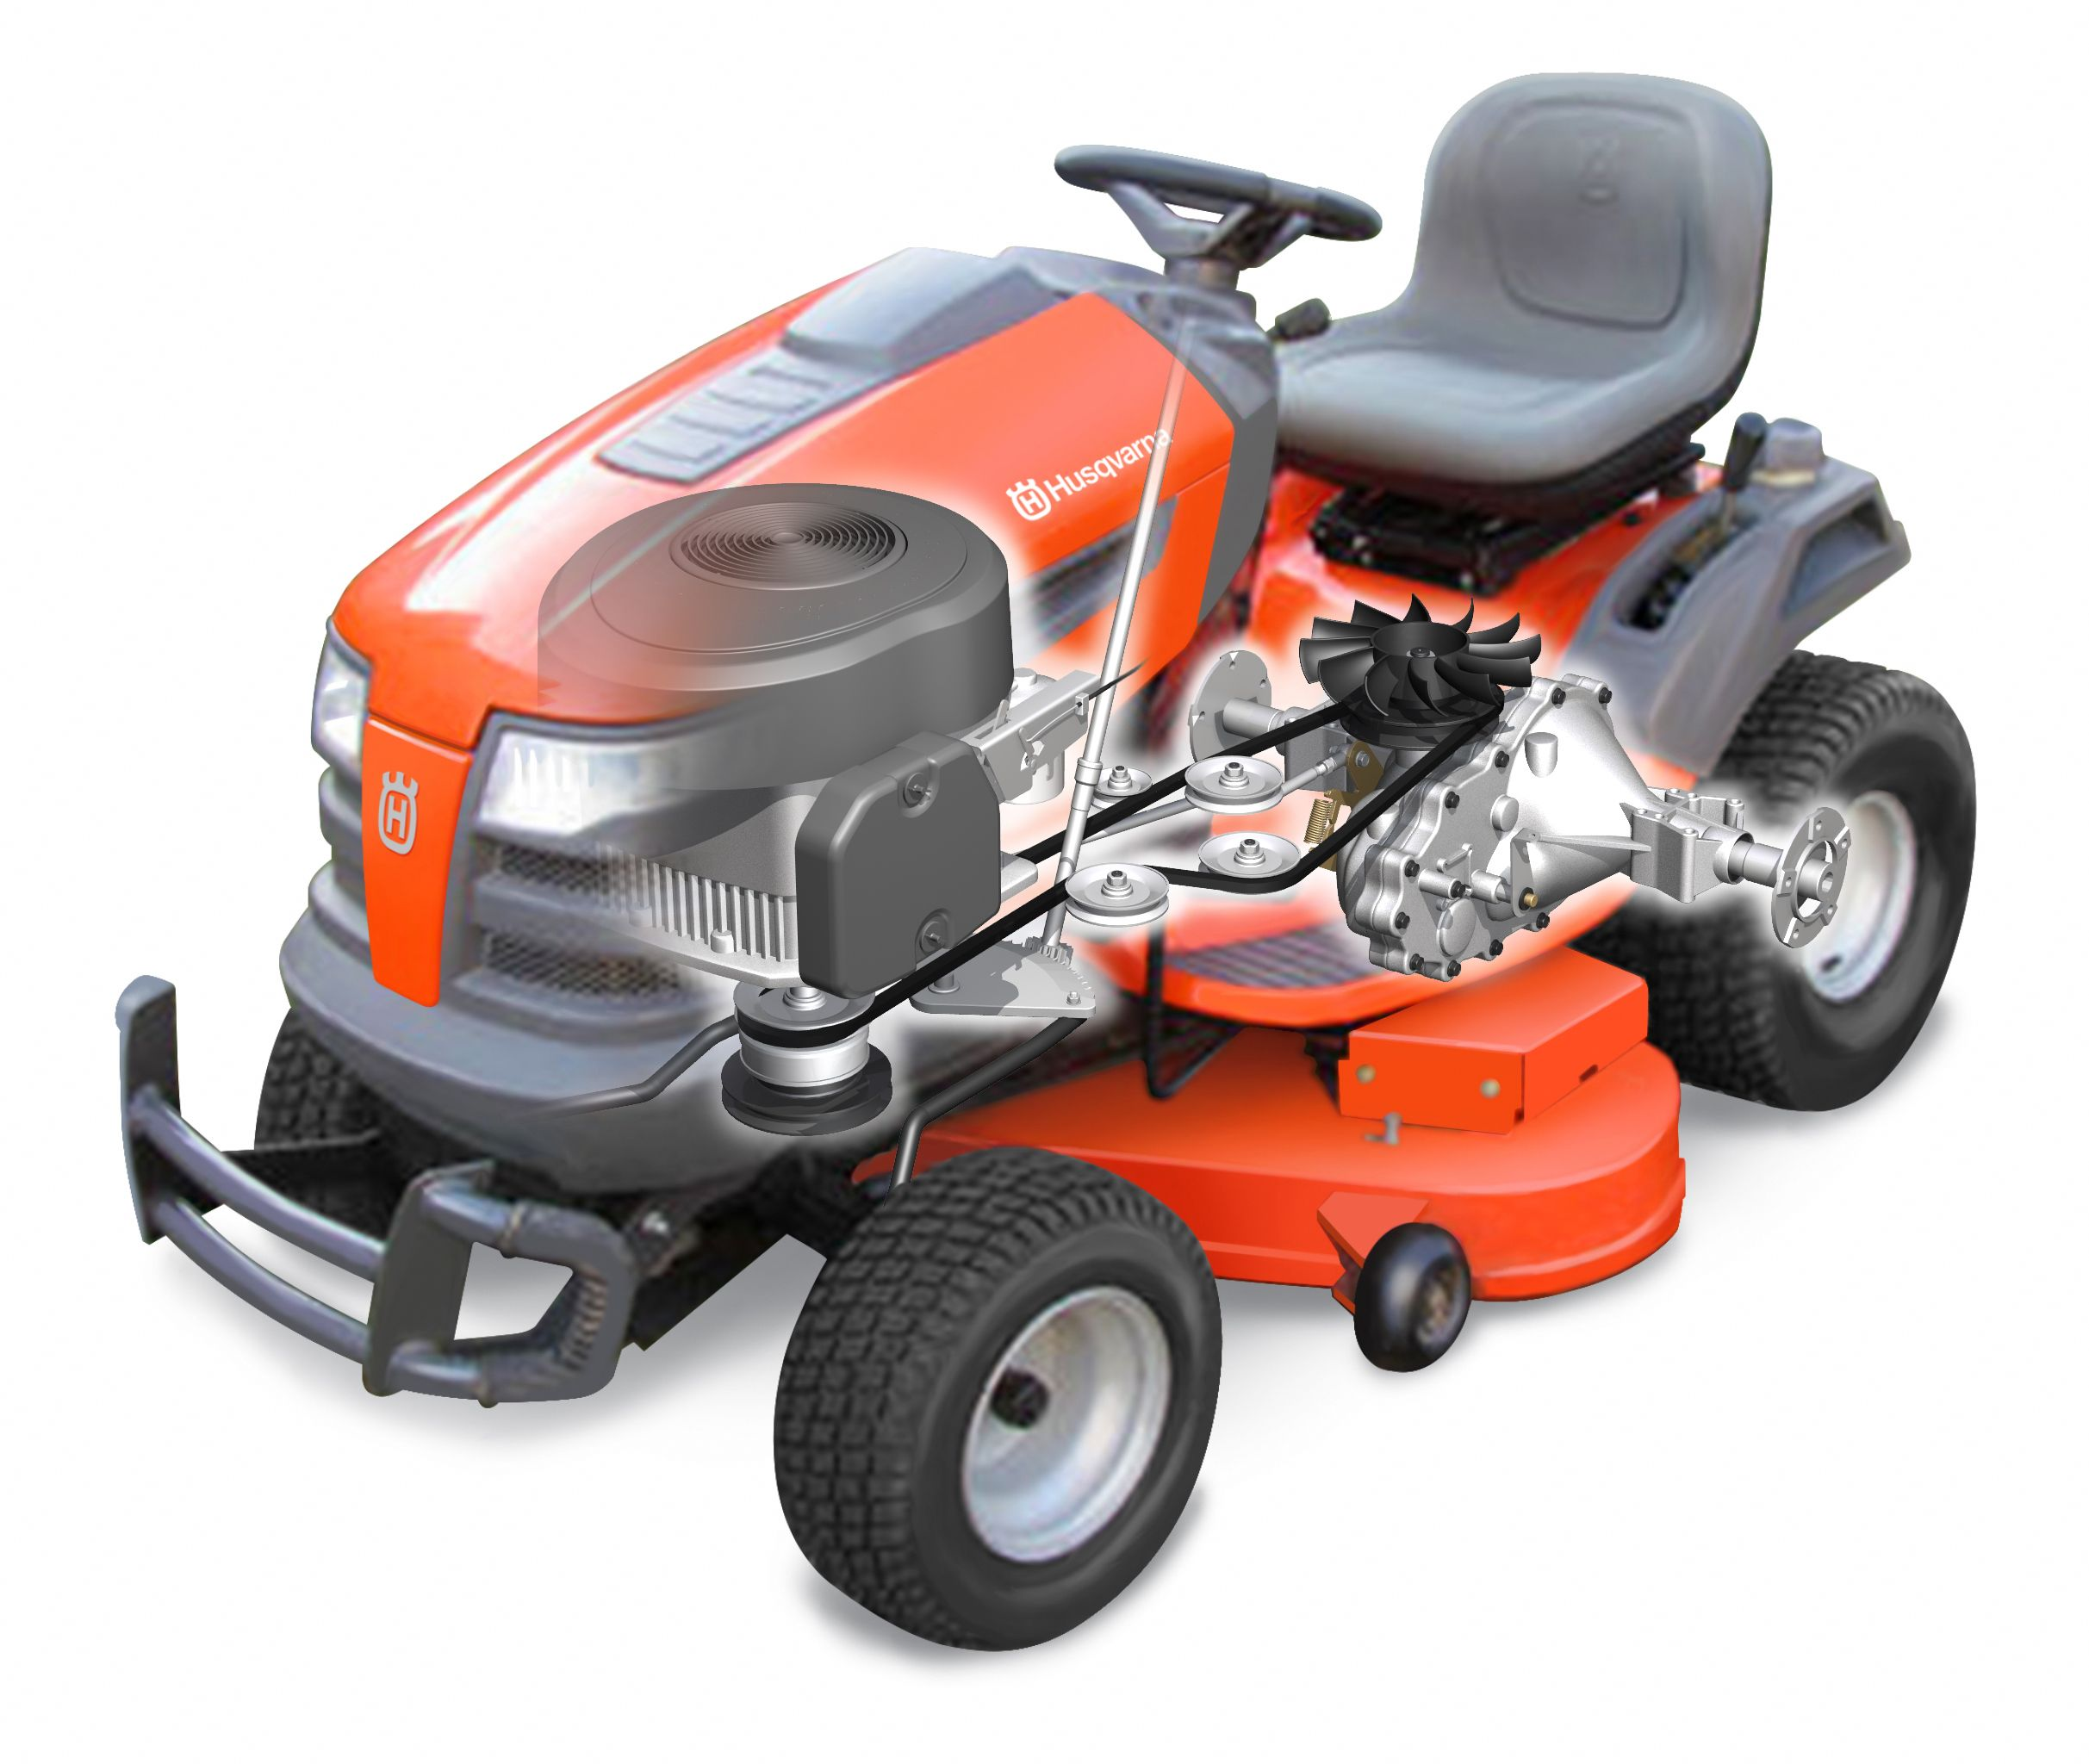 The Best Electric And Gas Mowers For Any Type Of Yard Lawn Mower Hobby Shops Near Me Mower